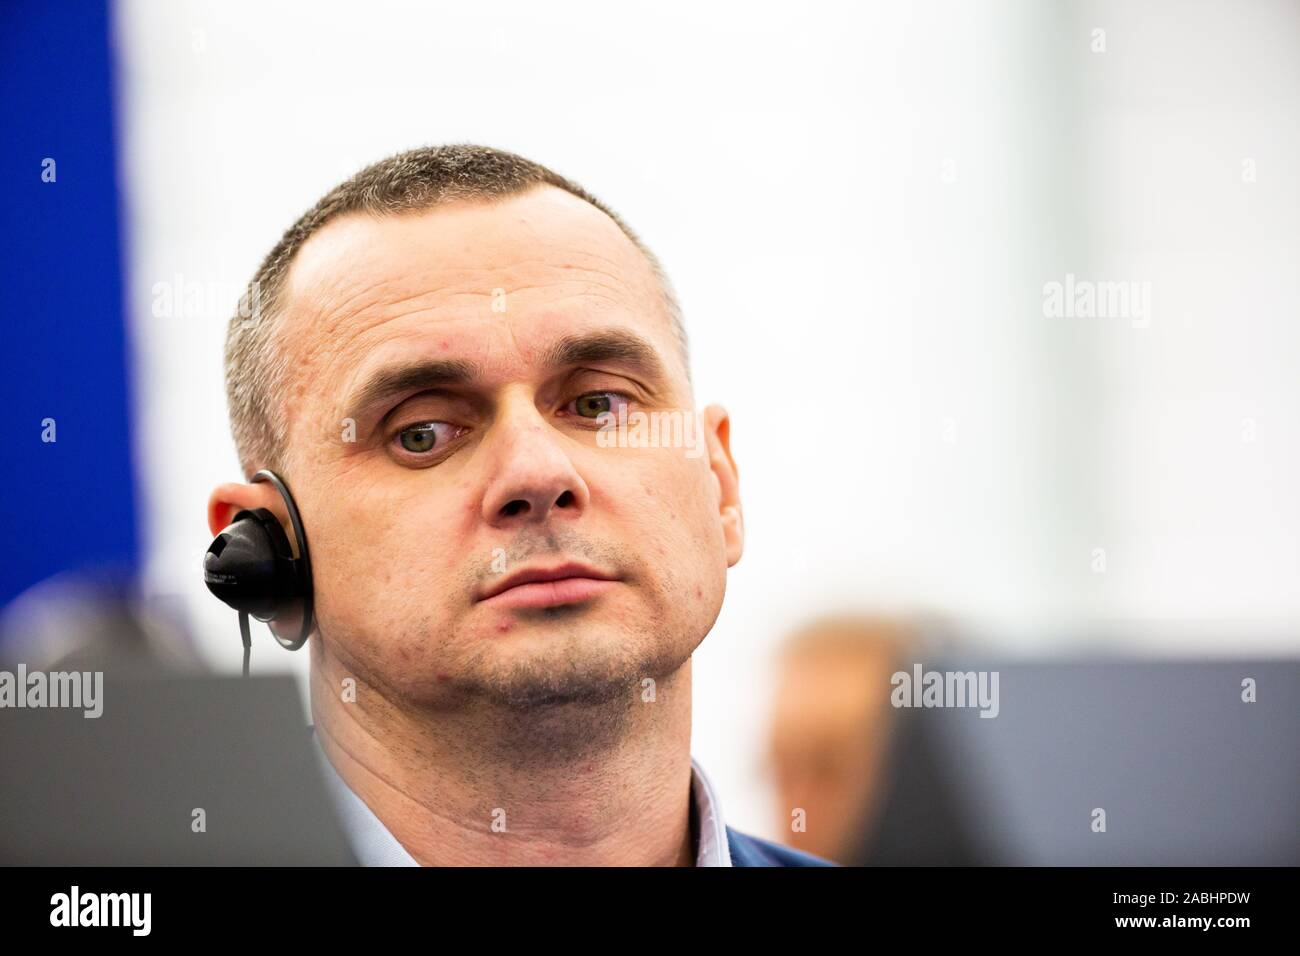 26 November 2019, France (France), Straßburg: The Ukrainian film director and former political prisoner Oleg Senzow (l-r) sits in the plenary hall of the European Parliament during the laudation by the President of the European Parliament, Sassoli, on the occasion of the award of the Sakharov Prize for Freedom of Thought to Senzow. Senzow was imprisoned in Russia from May 2014 to September 2019. Photo: Philipp von Ditfurth/dpa Stock Photo